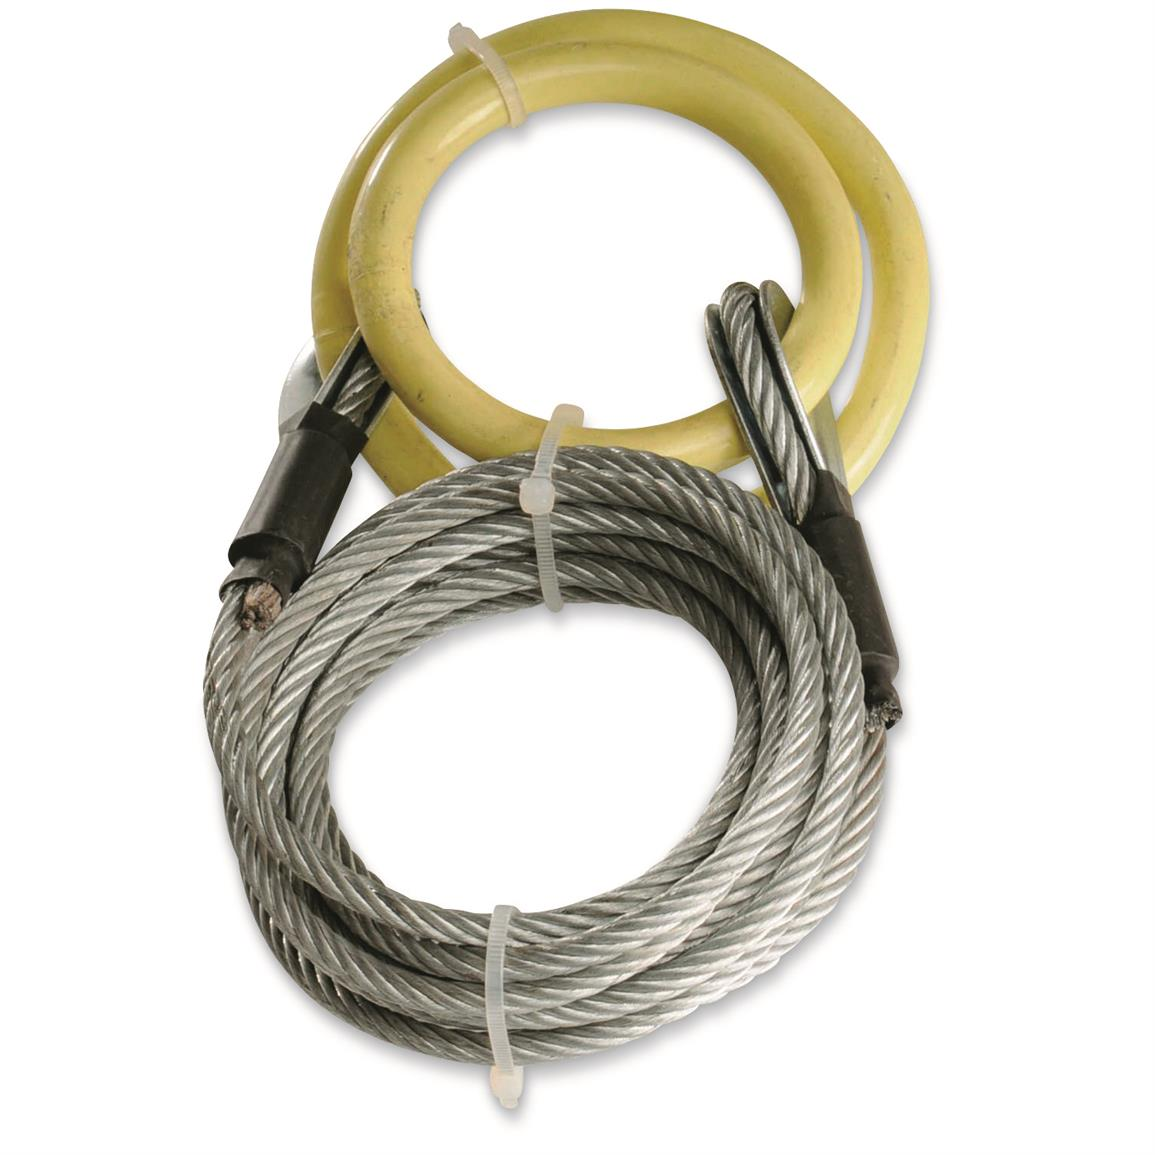 Heavy-duty cable measures 10¿ long x 3/16 , 1,500-lb capacity